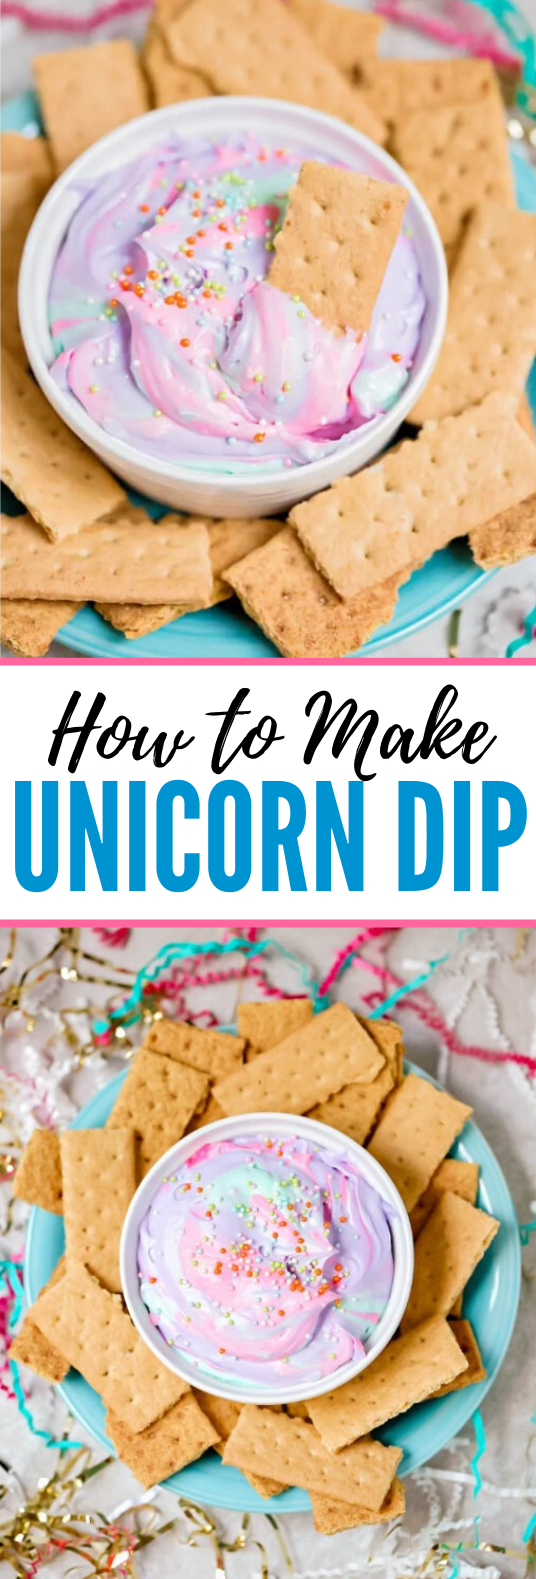 UNICORN DIP #desserts #partyfood